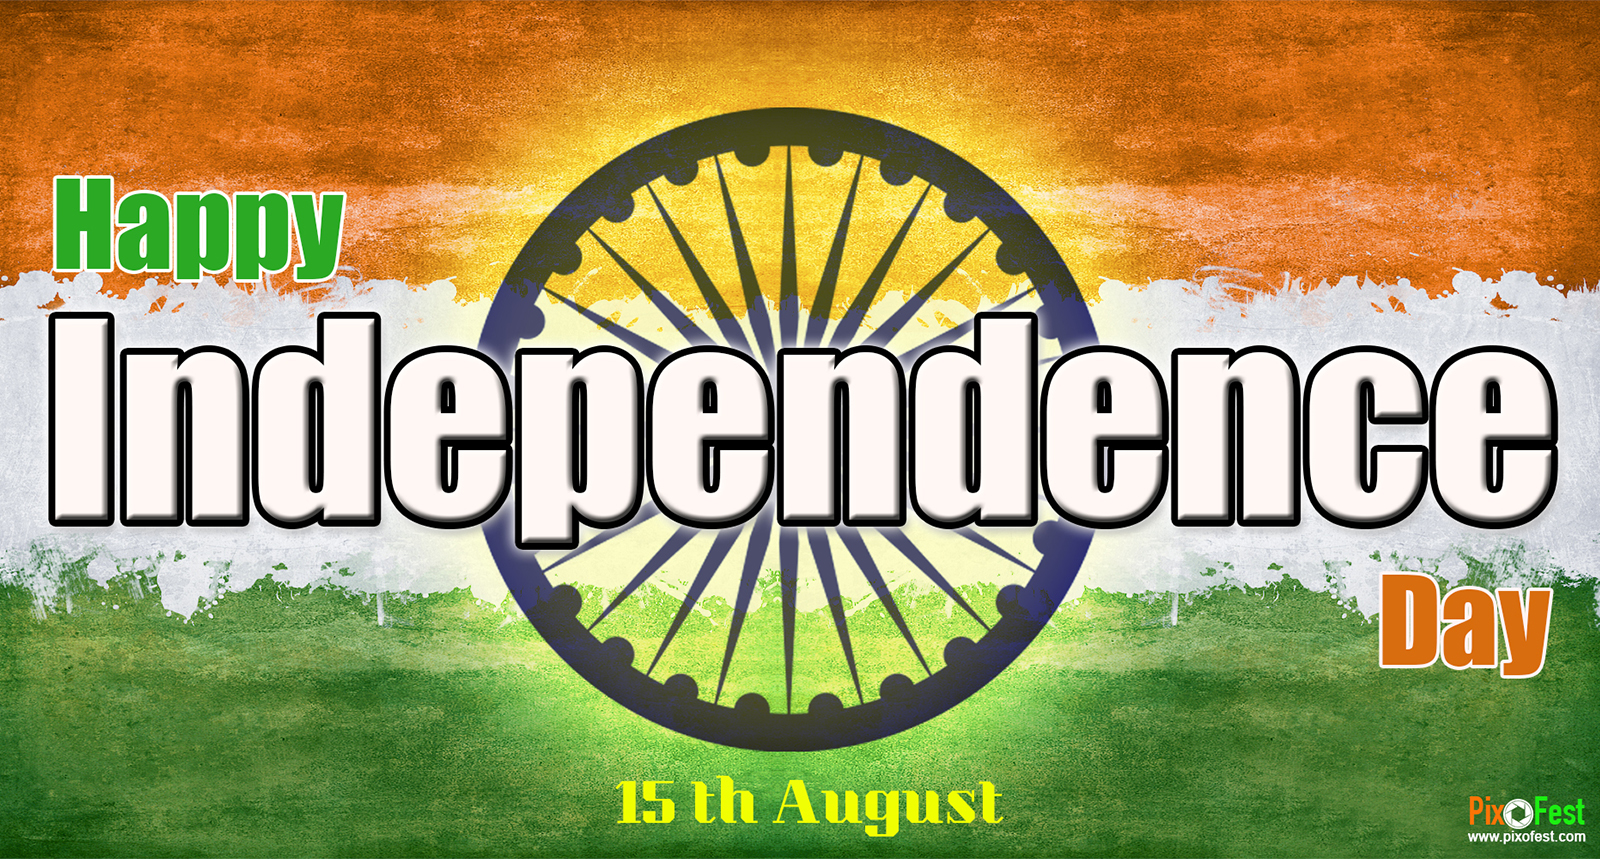 independenceday,15thaugust,independencedayindia,celebration,independence,constitution,government,country,culture,day,freedom,india,indian,republic,national,flag,nationalflag,festival,chakra,ashokchakra,26thjanuary,ashok,pixofest